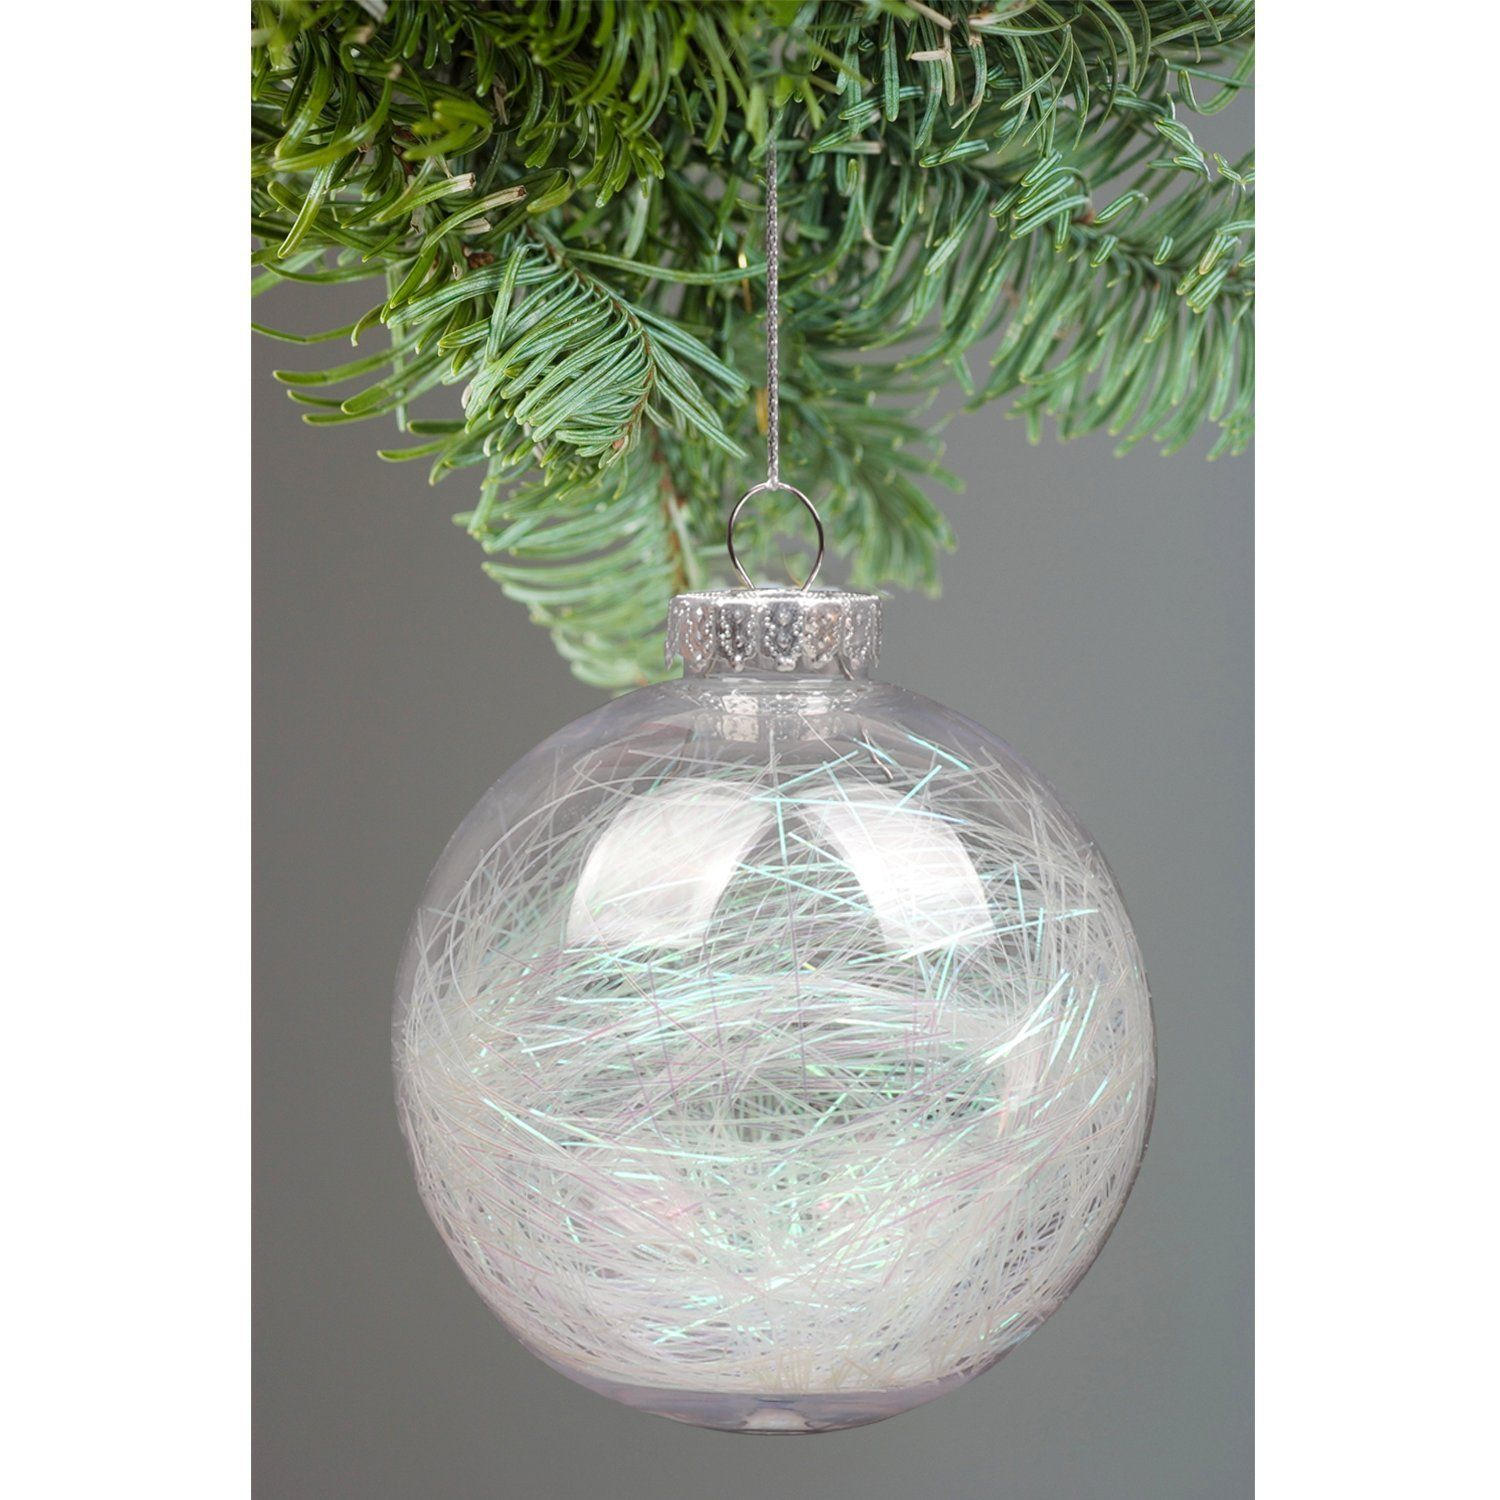 Ki Store Clear Christmas Balls Ornament Plastic Shatterproof Large Christmas Tree Ornaments Ir Large Christmas Tree Unique Christmas Ornaments Tree Decorations